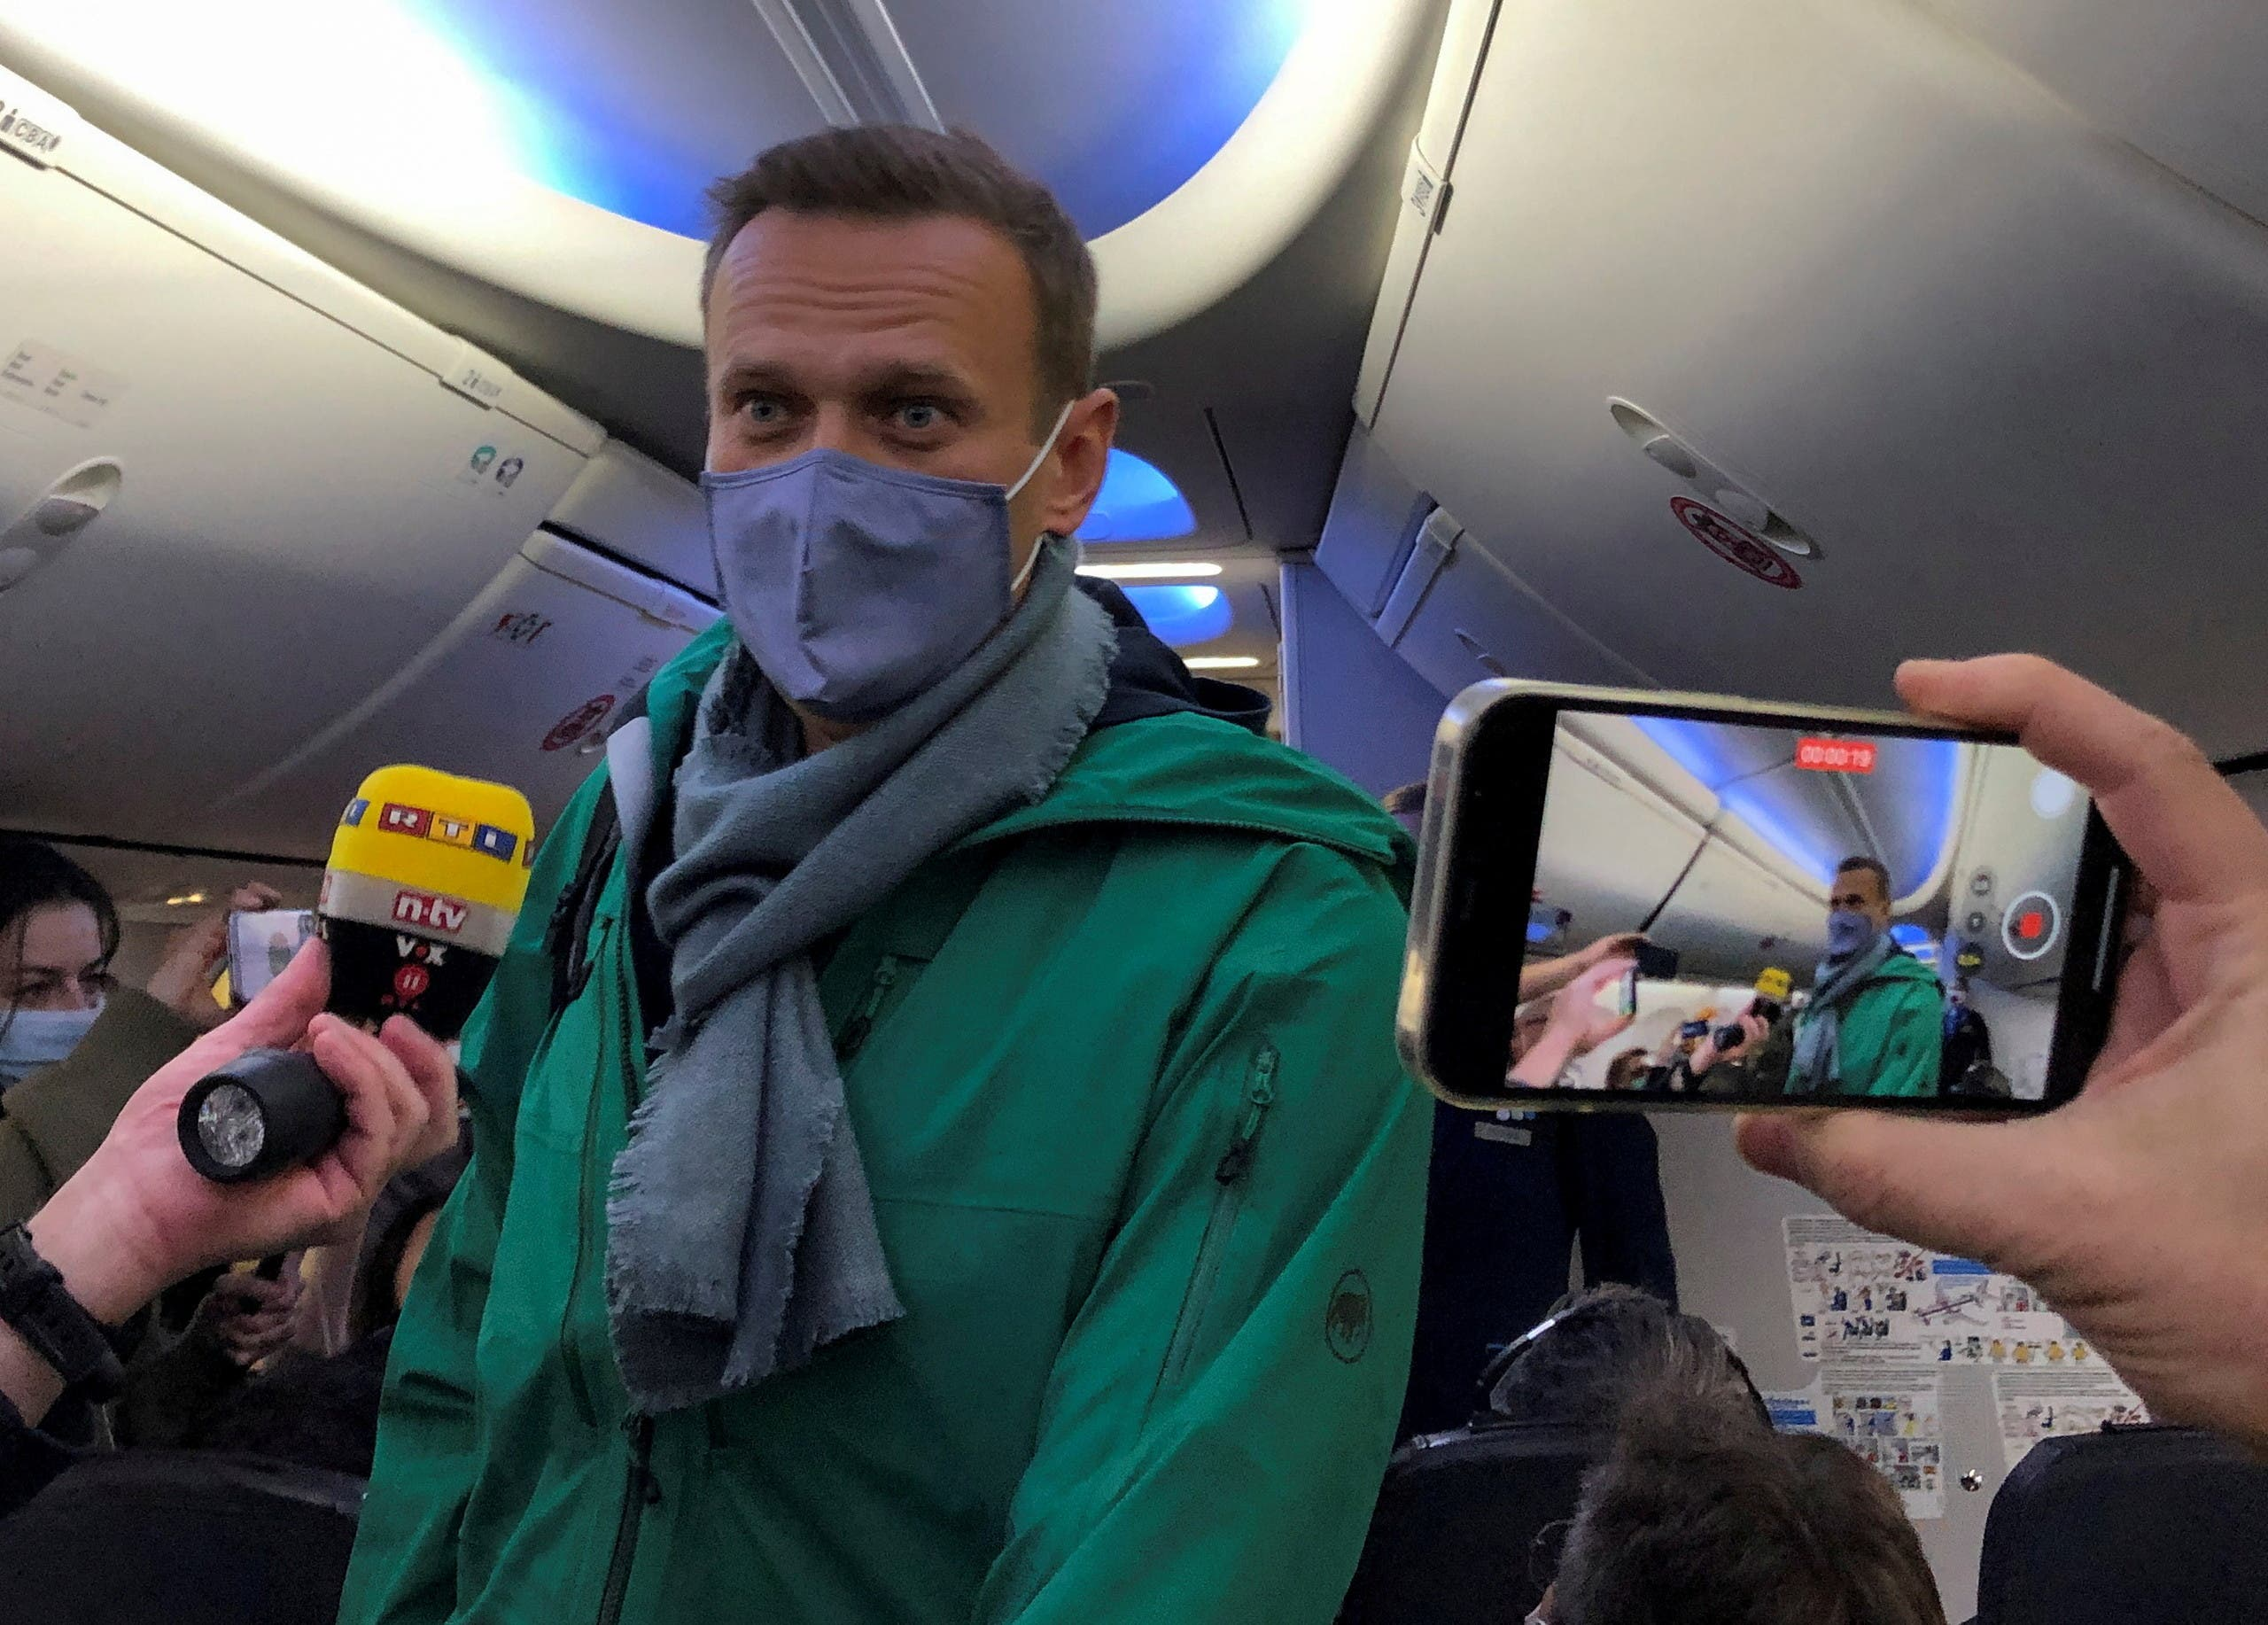 Russian opposition leader Alexei Navalny is seen on board a plane before the departure for the Russian capital Moscow at an airport in Berlin, Germany January 17, 2021. (Reuters)